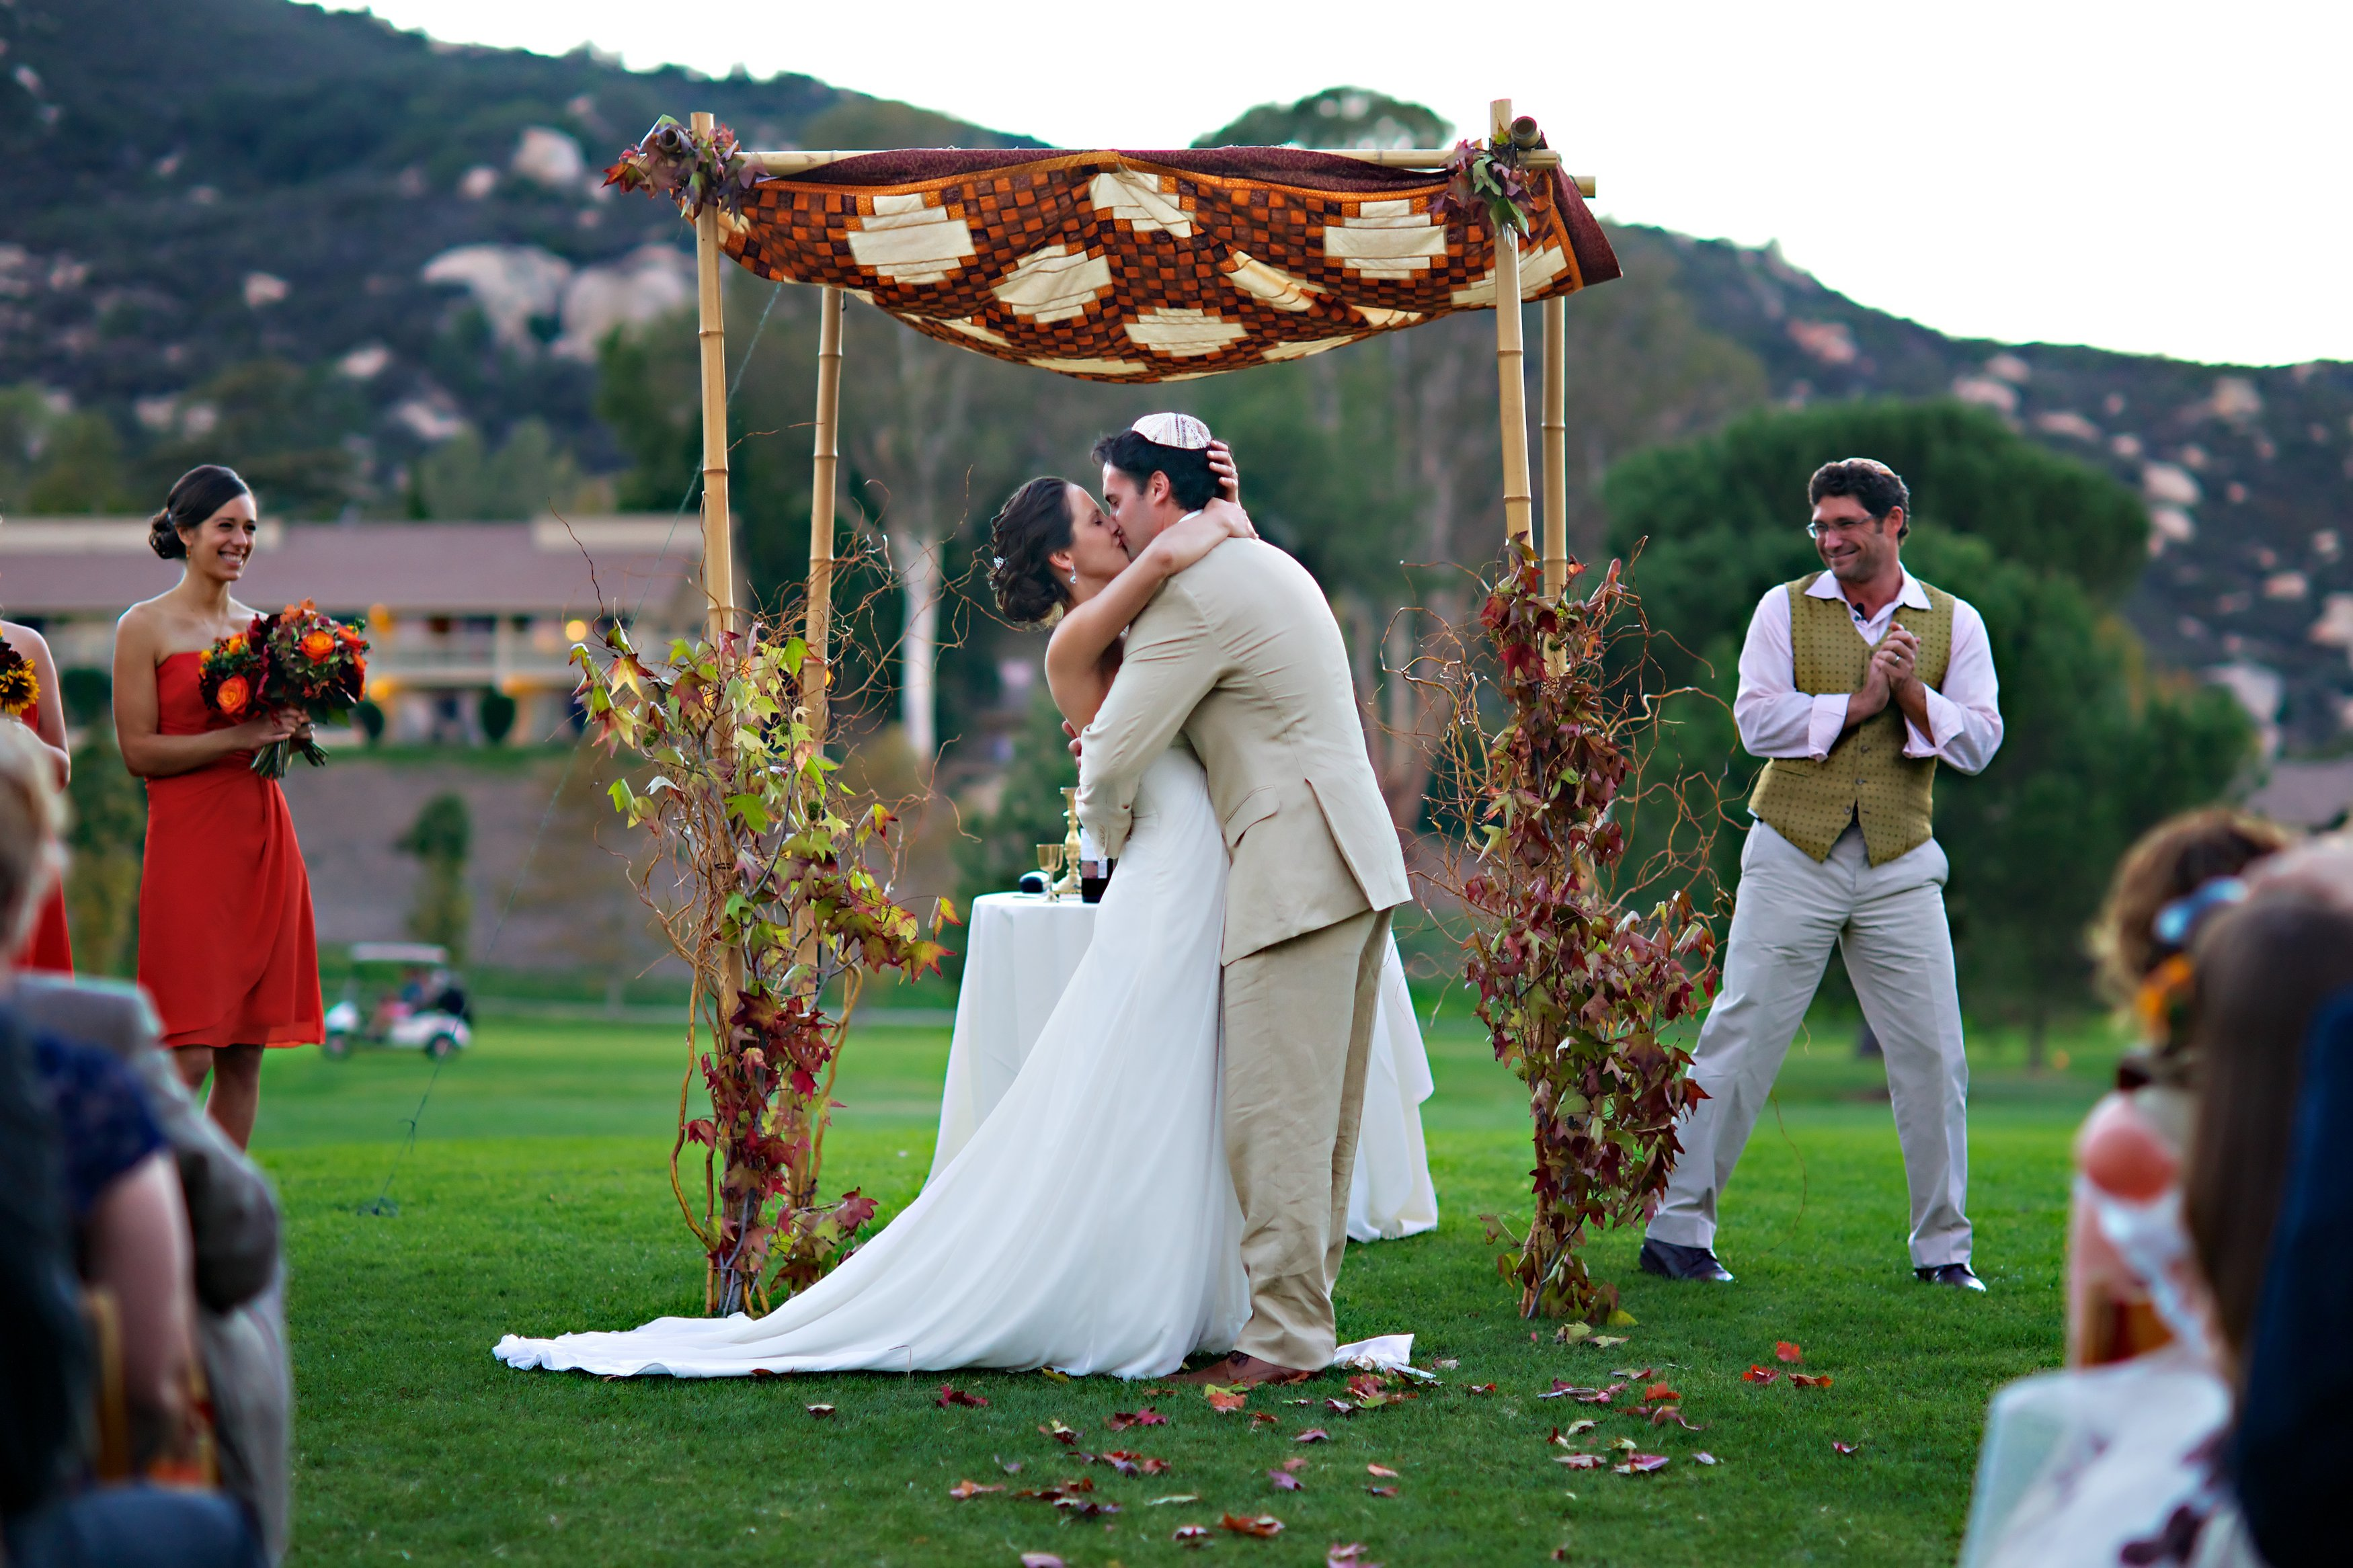 Temecula Creek Inn | Nov 4, 2012